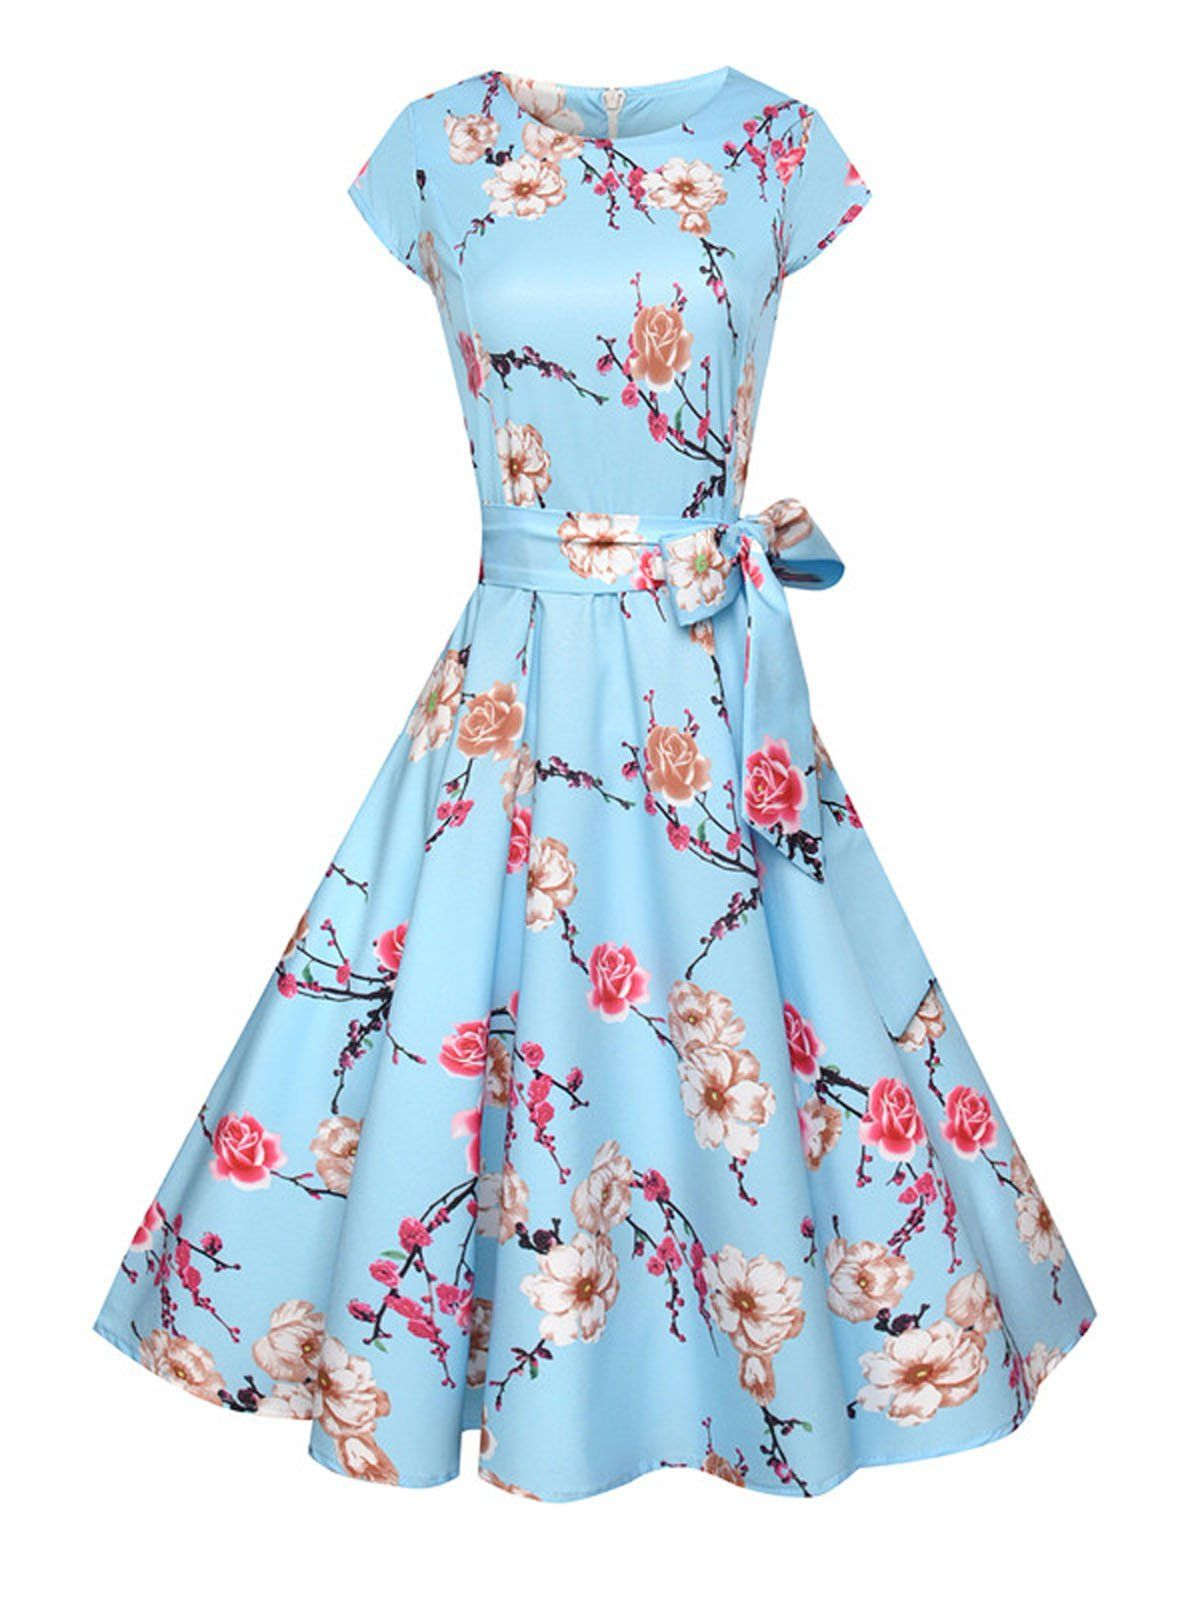 cb0e884975a25 1950s Floral Print Swing Party Dress – Retro Stage - Chic Vintage Dresses  and Accessories